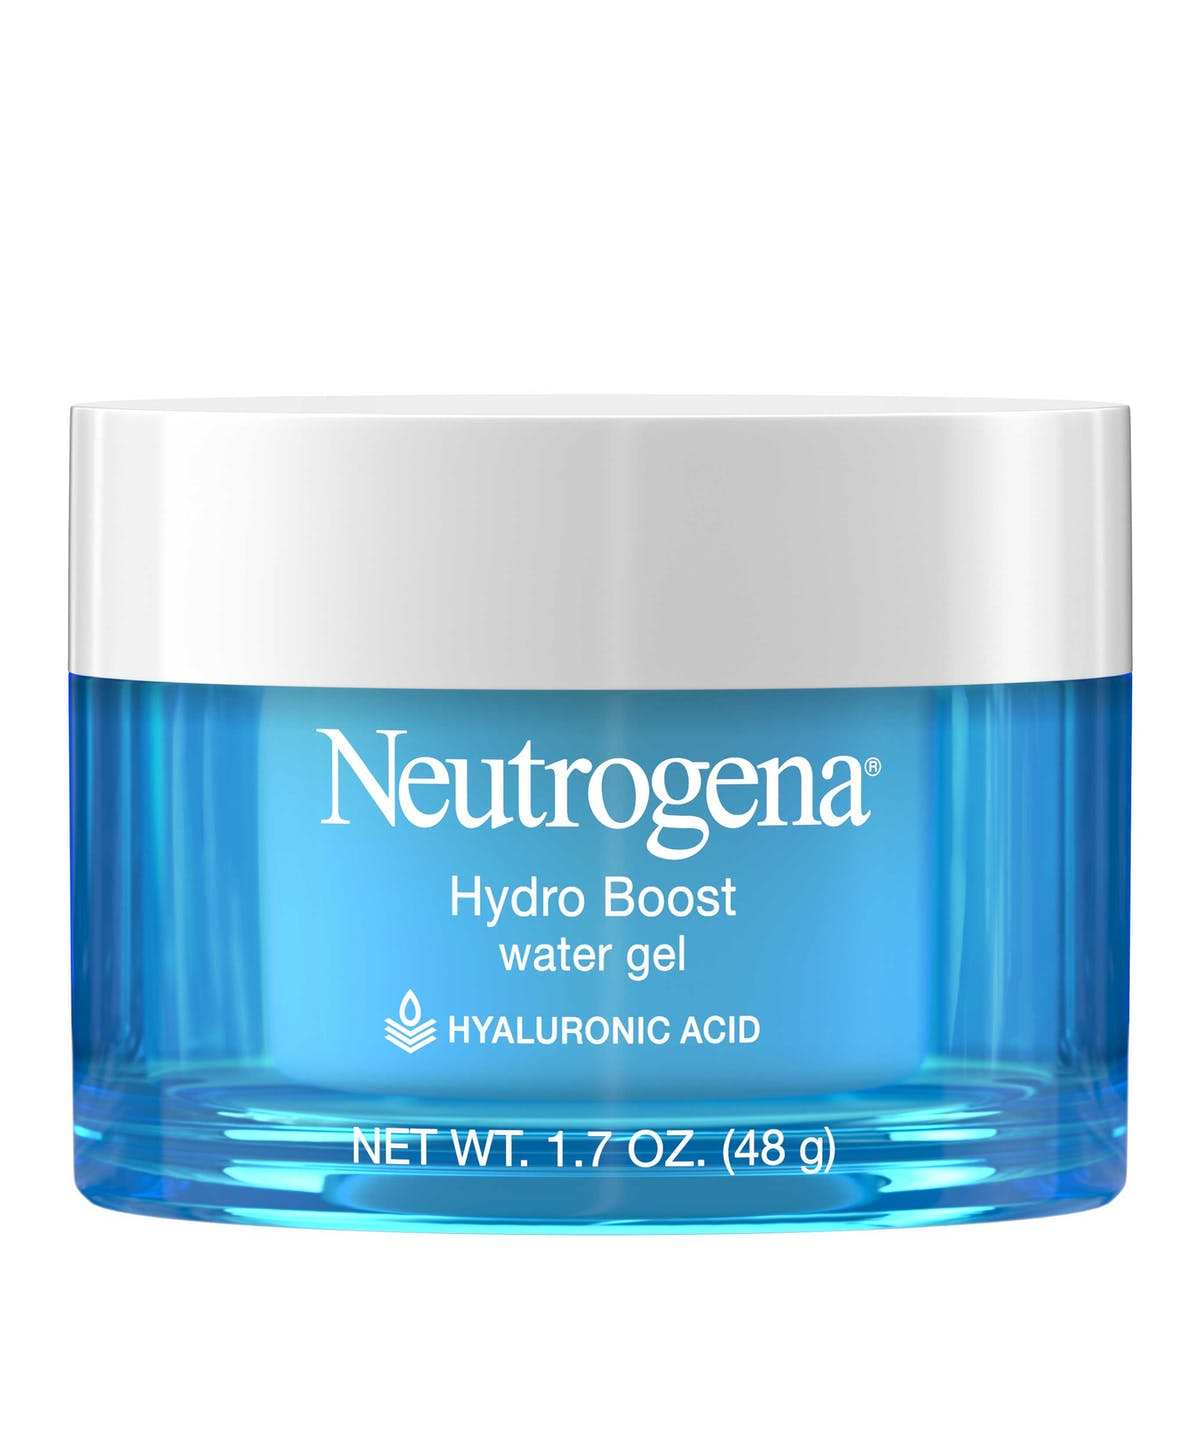 neutrogena hydro boost moisturizer for oily skin